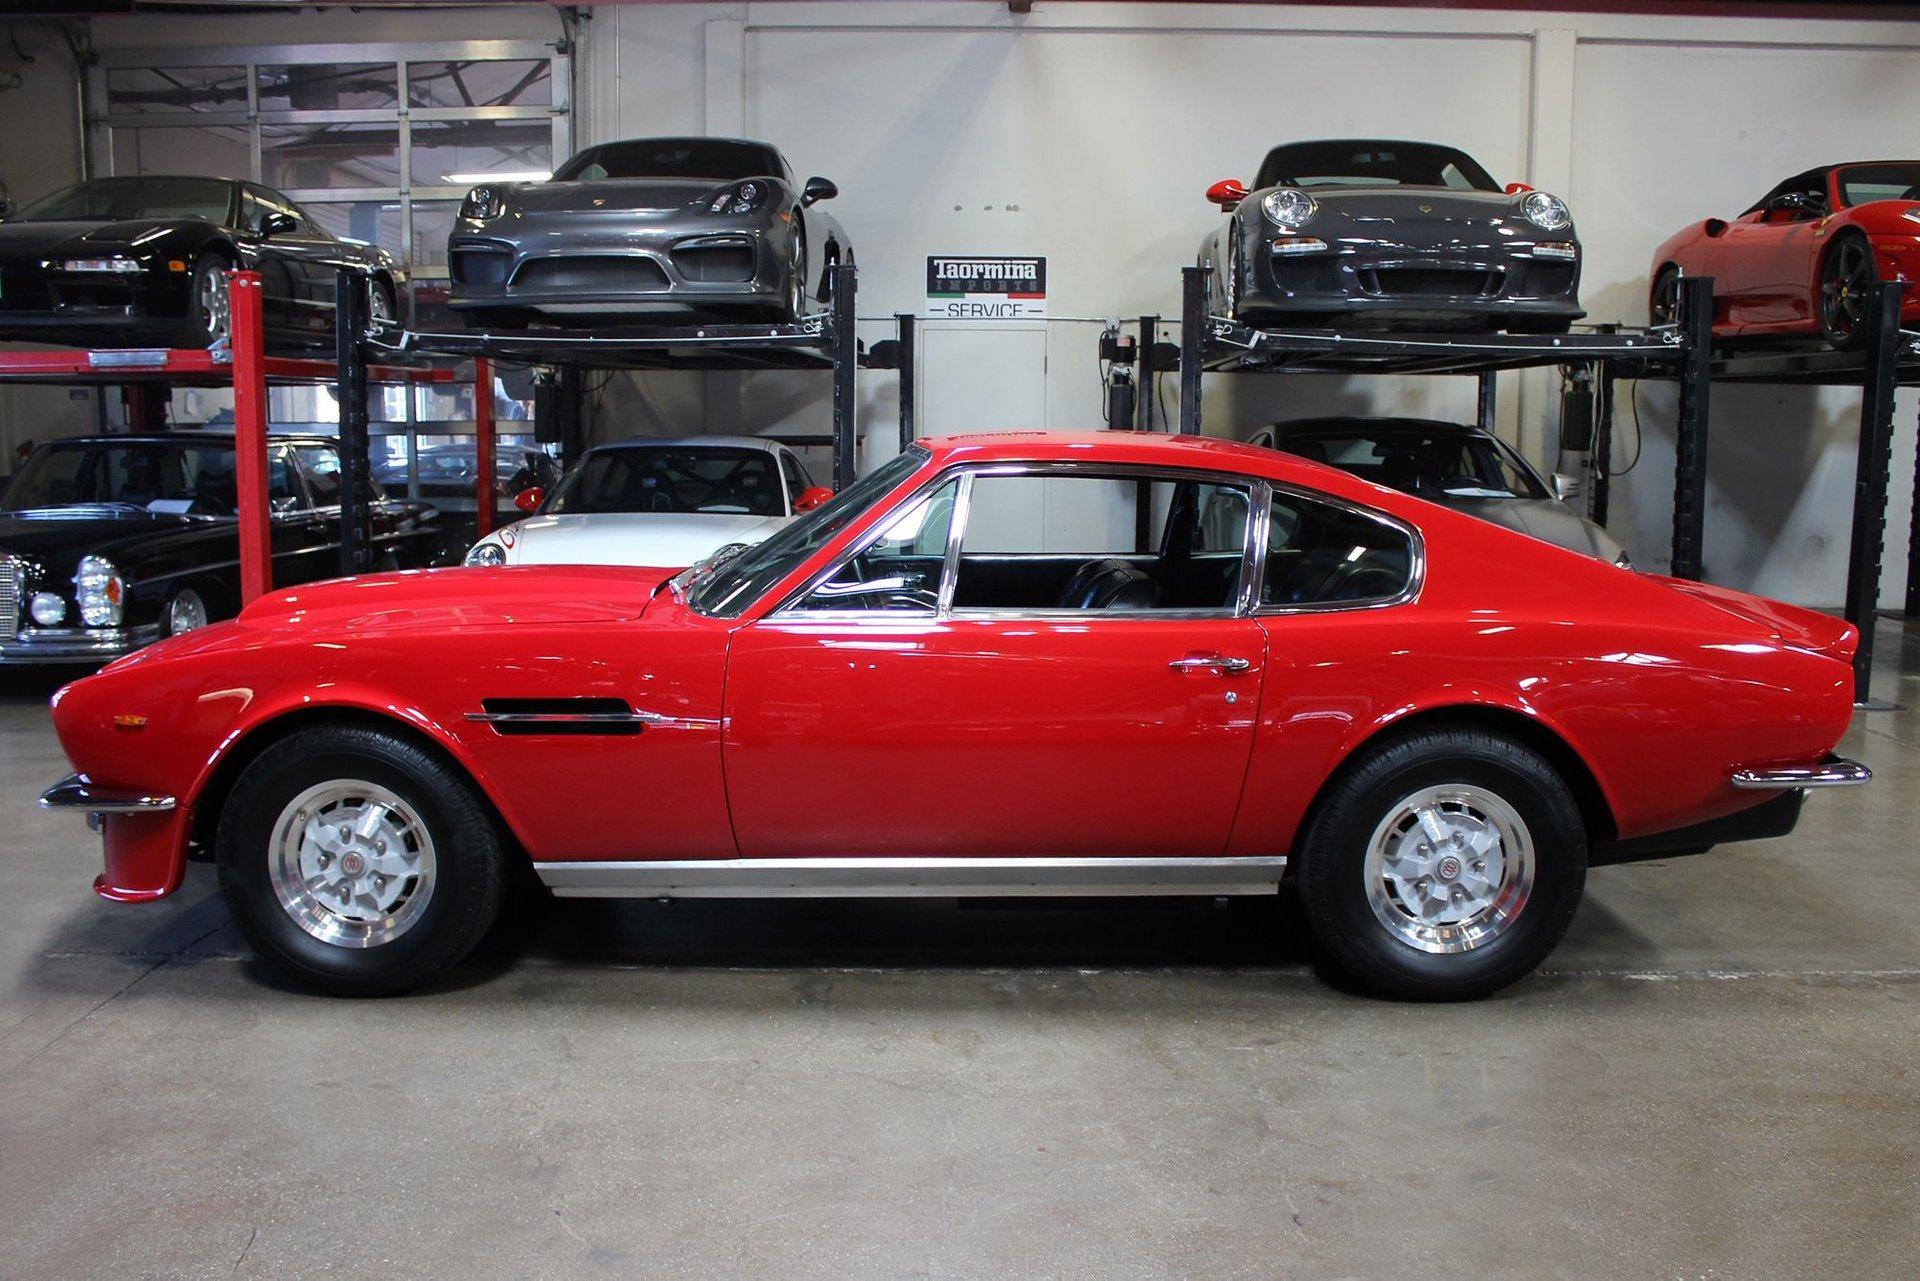 Used 1977 Aston Martin V8 Vantage For Sale 189 995 San Francisco Sports Cars Stock P19074